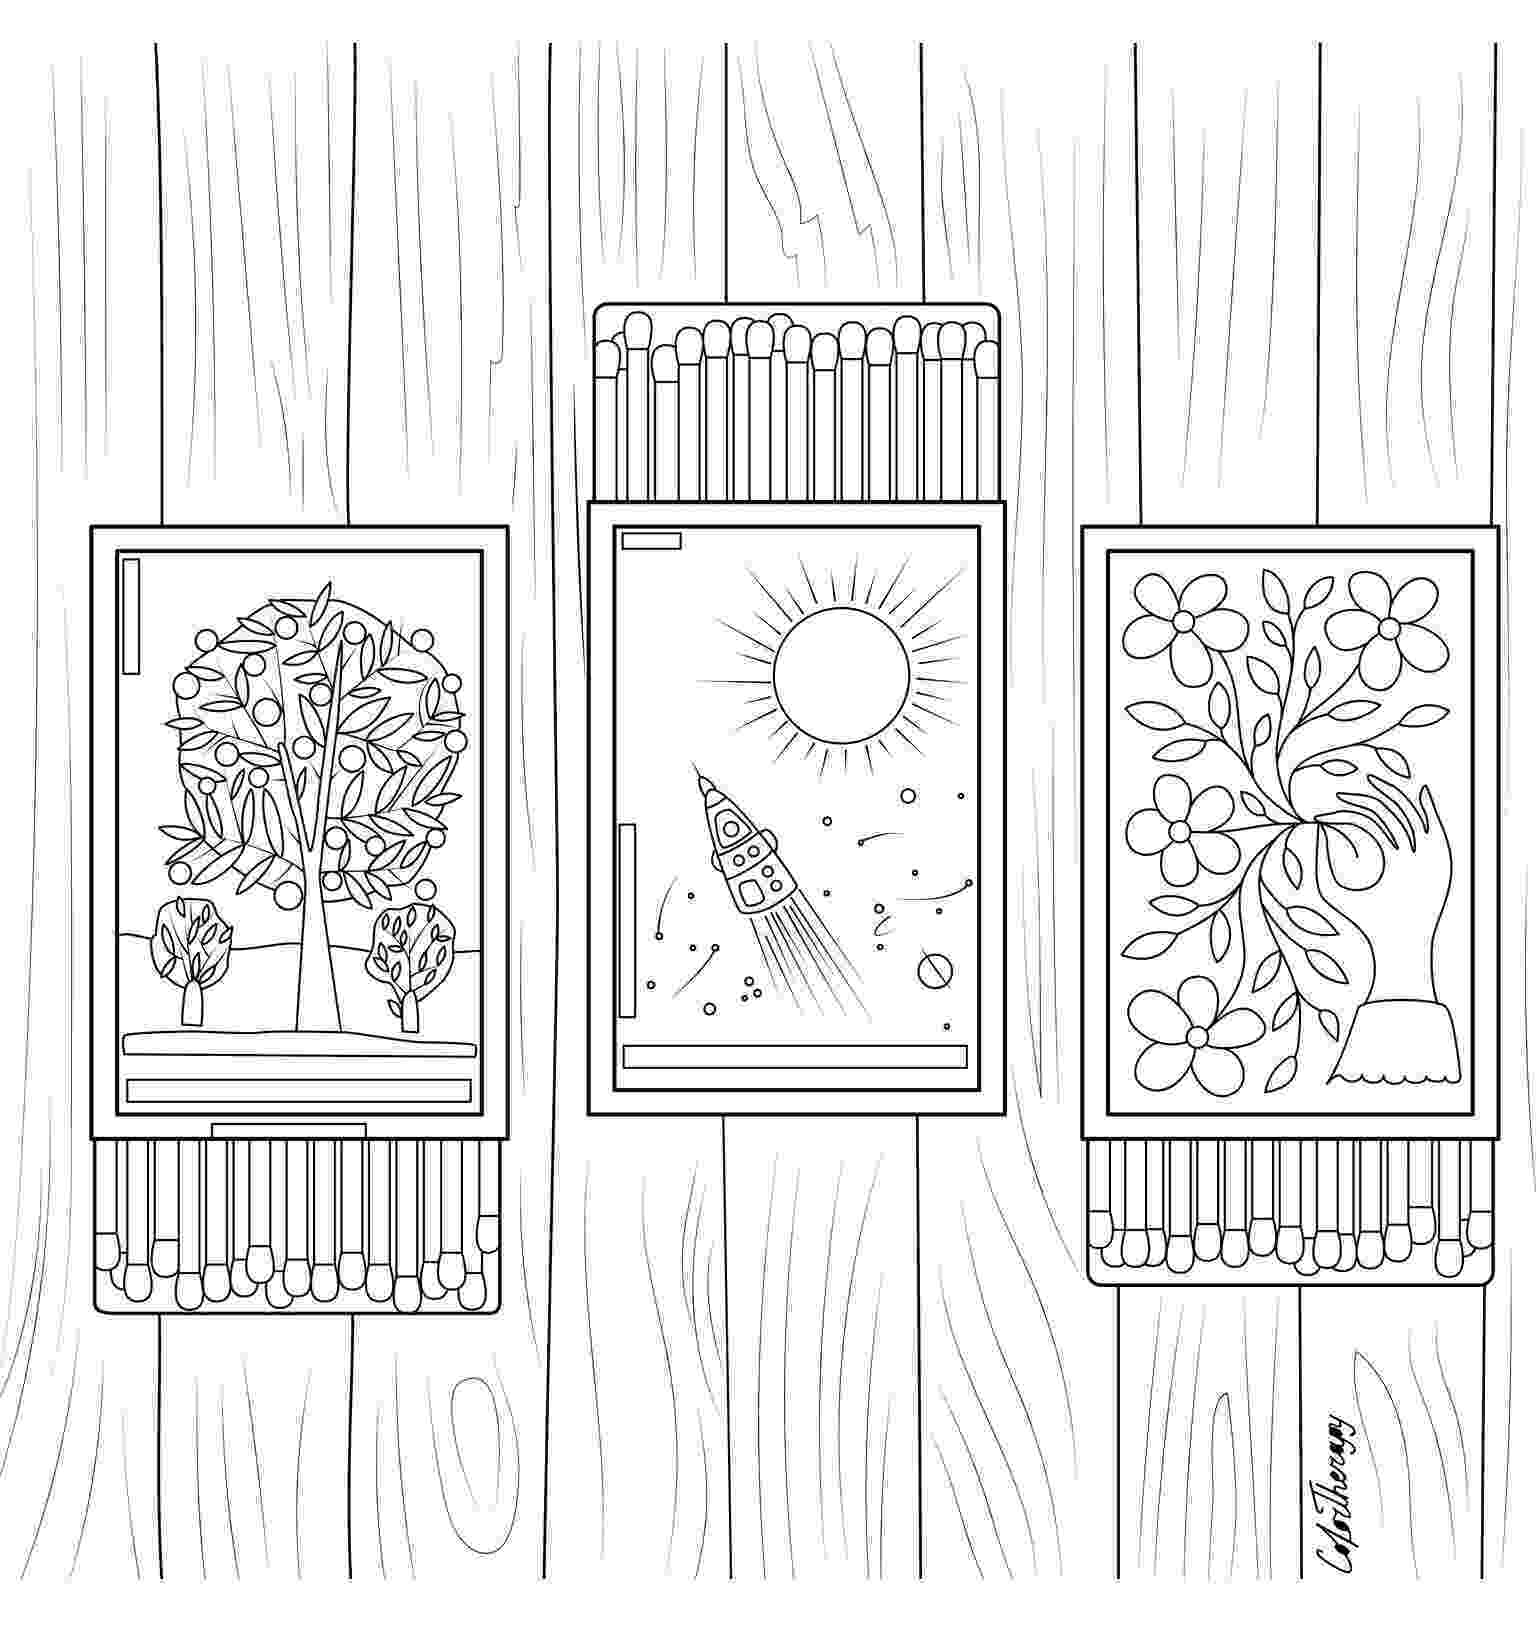 colouring online suggestions john adams coloring page free john adams online coloring colouring suggestions online